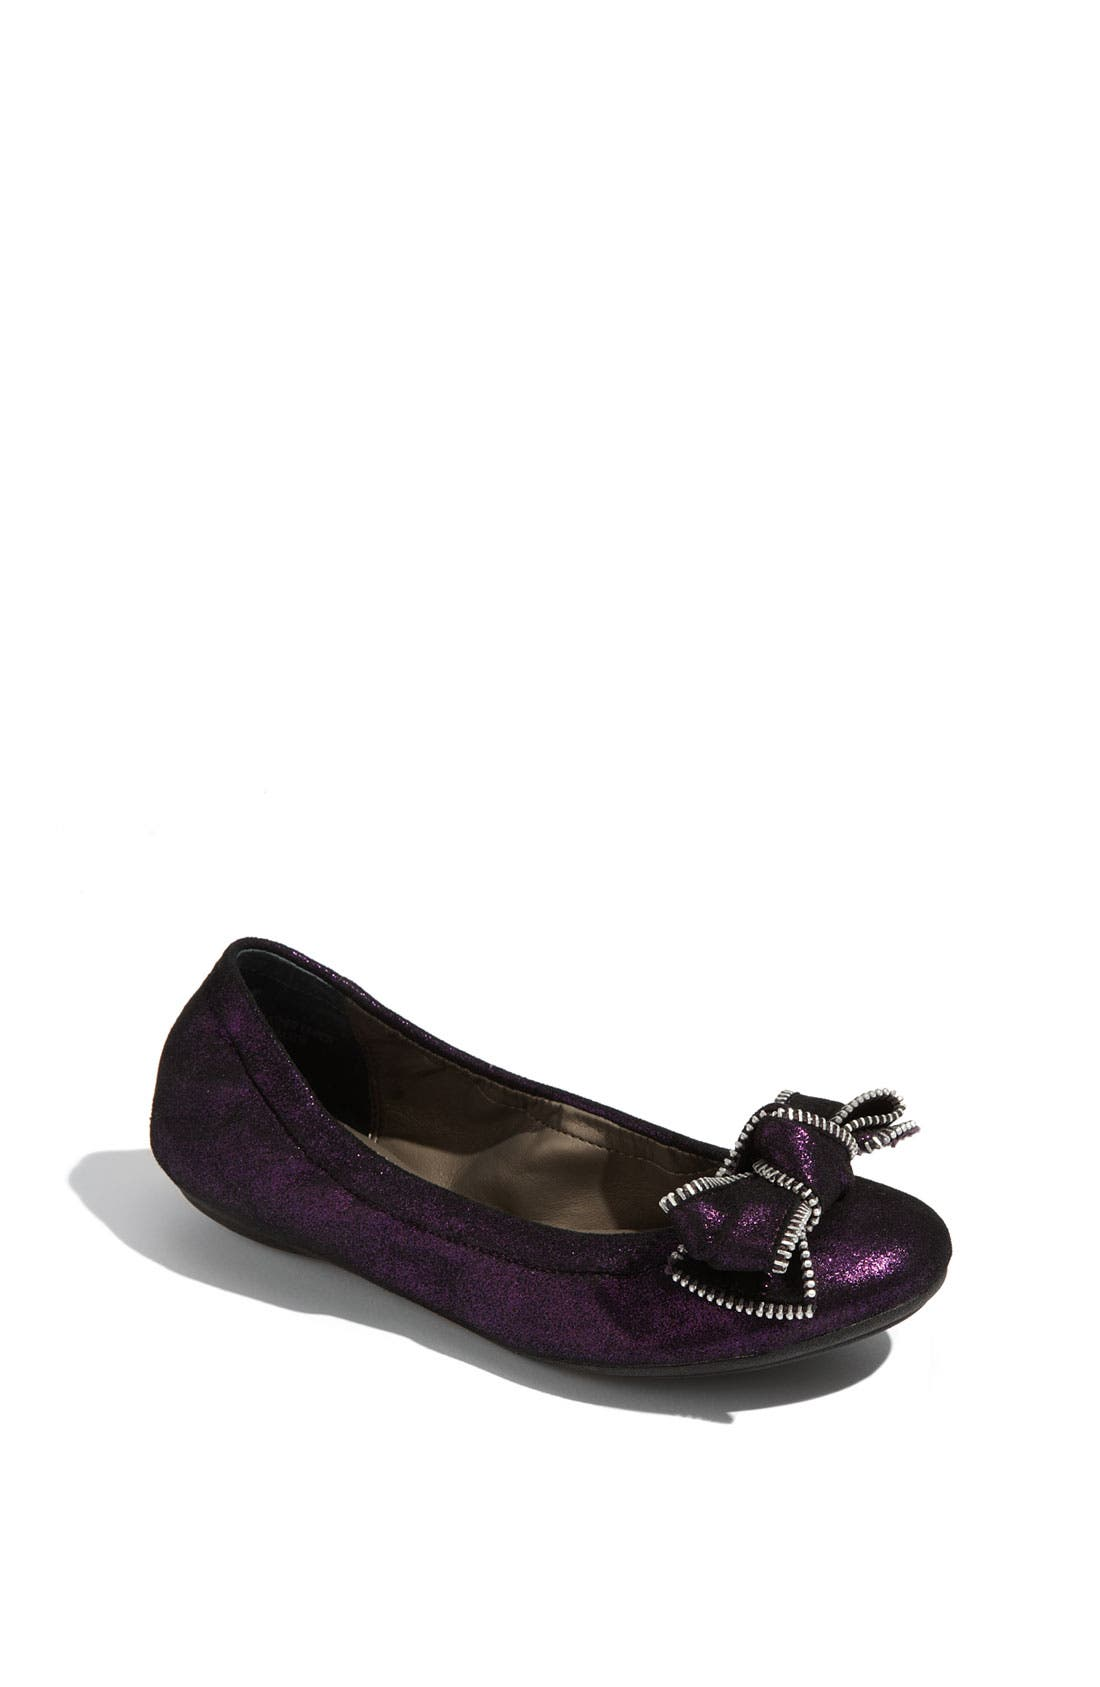 Alternate Image 1 Selected - Nordstrom 'Tessa' Flat (Walker, Toddler, Little Kid & Big Kid)